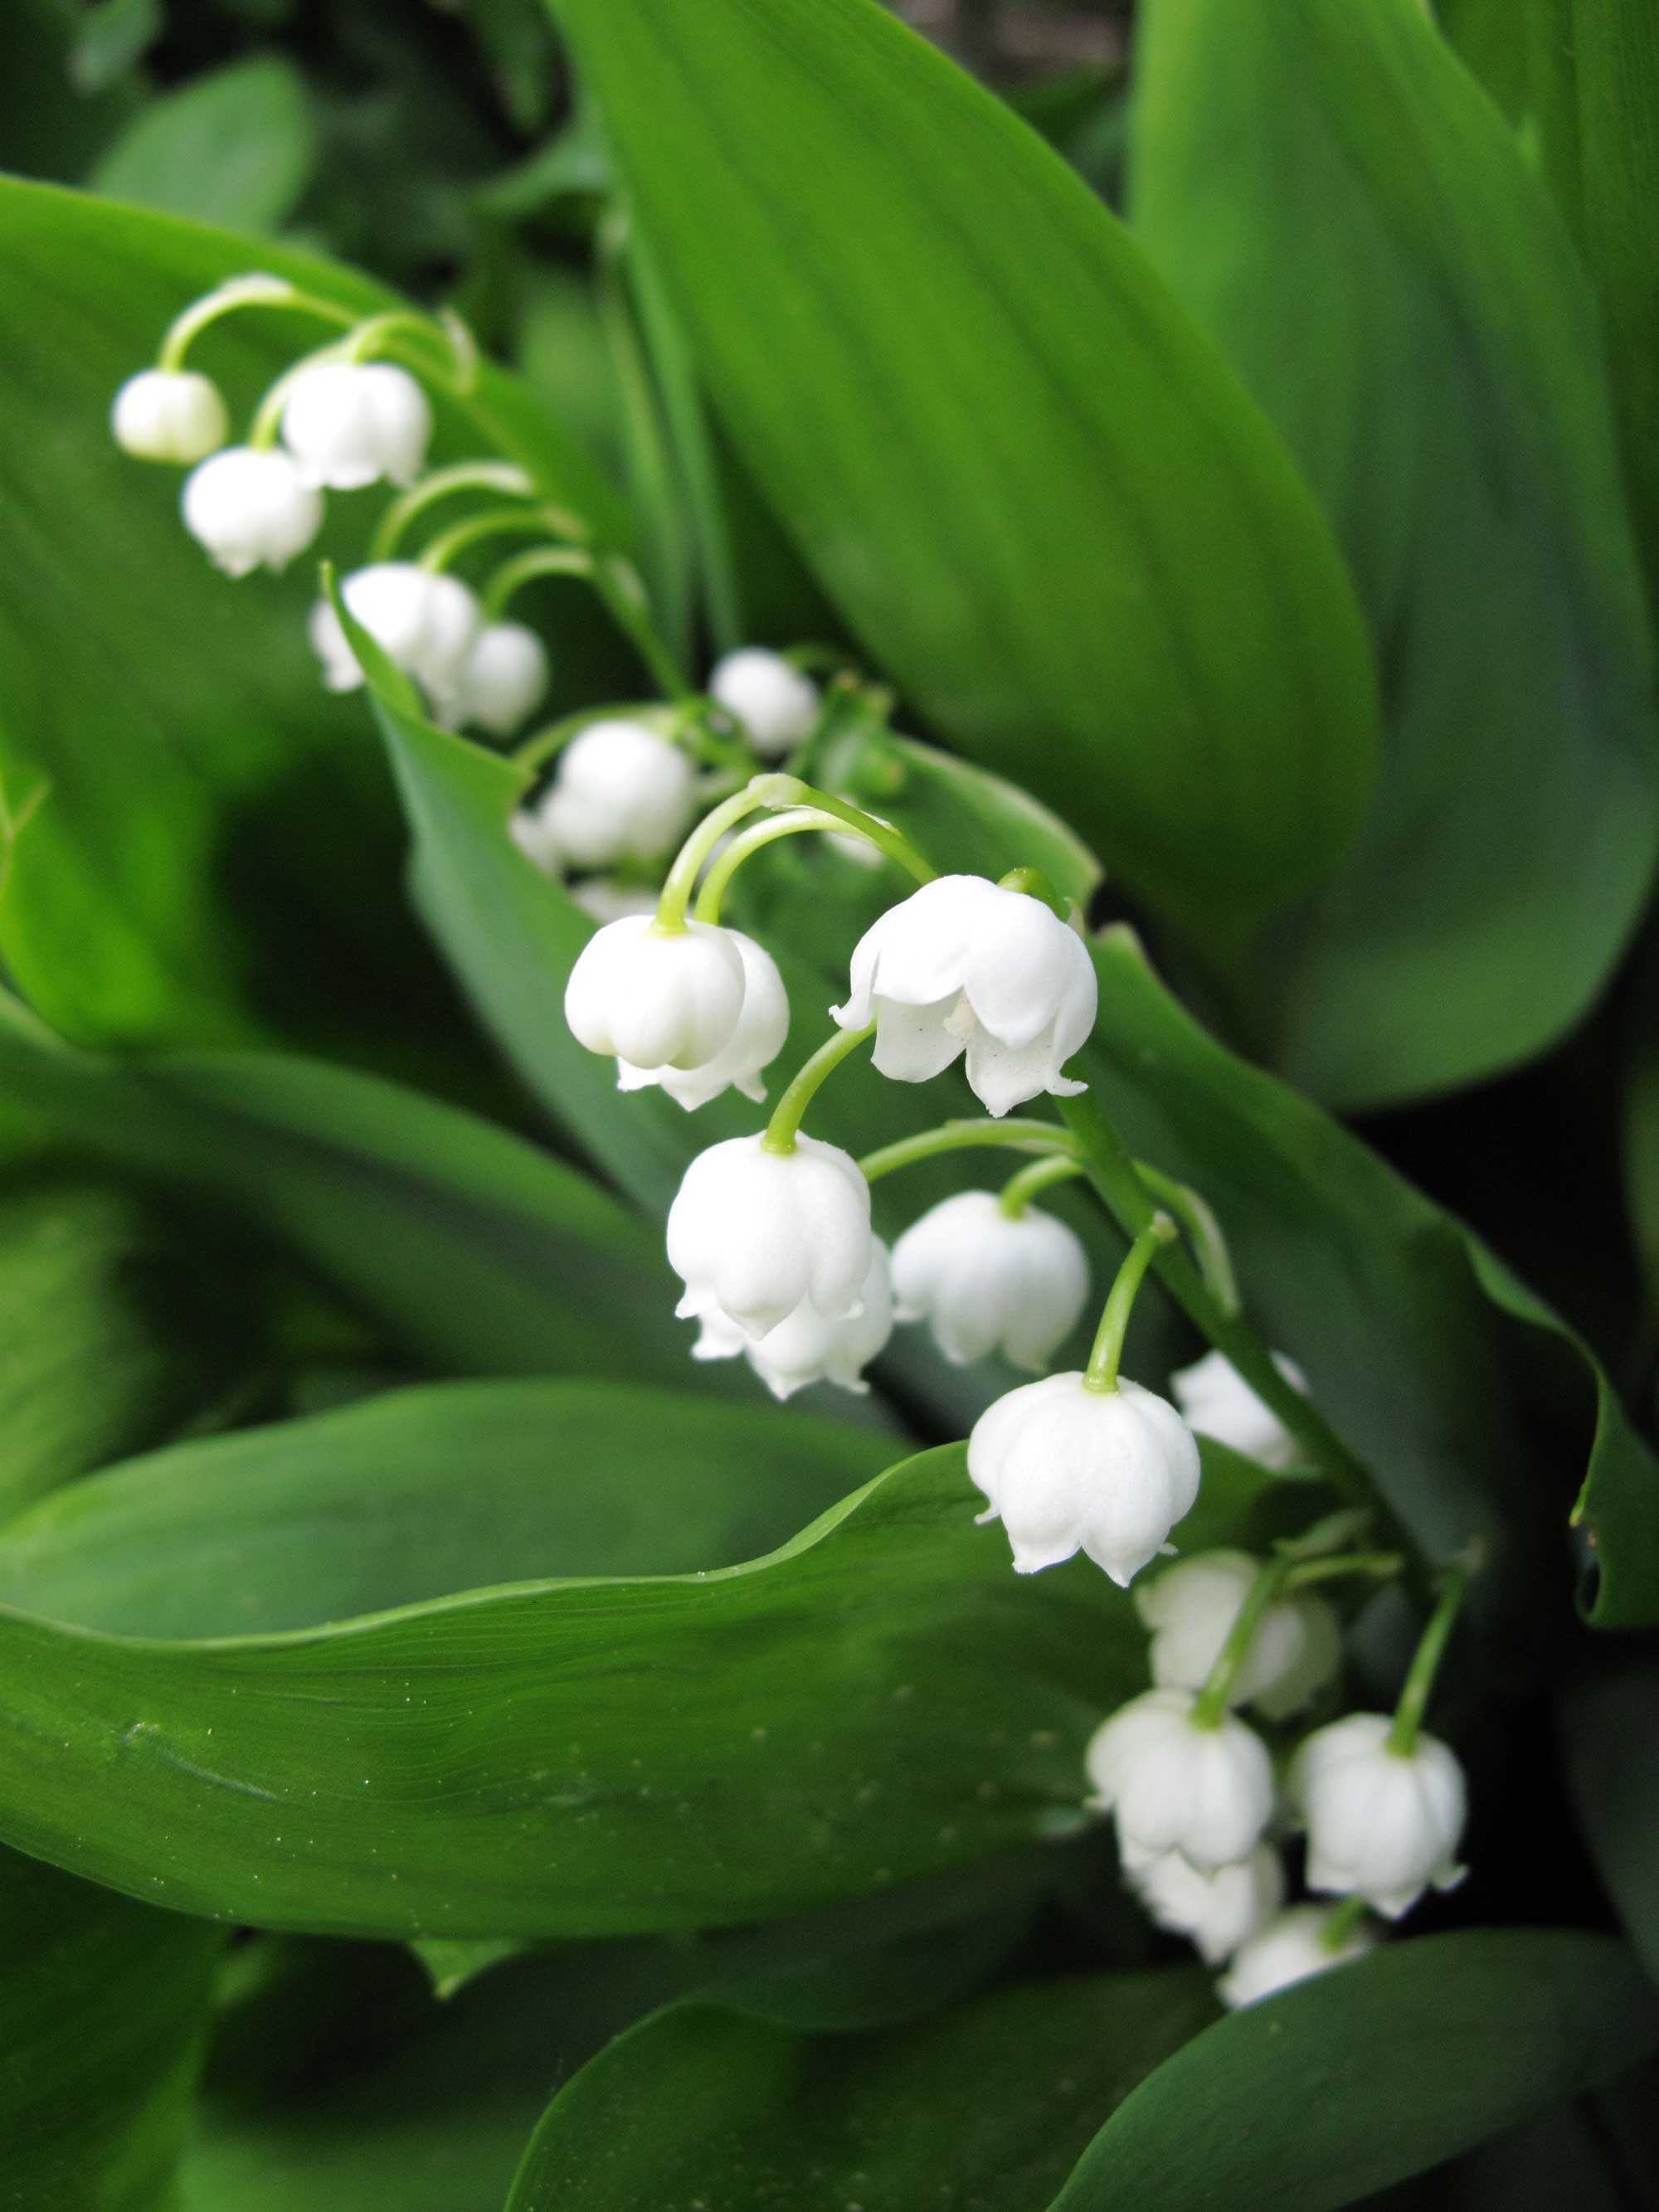 Growing Lily of the Valley: Tips and Tales